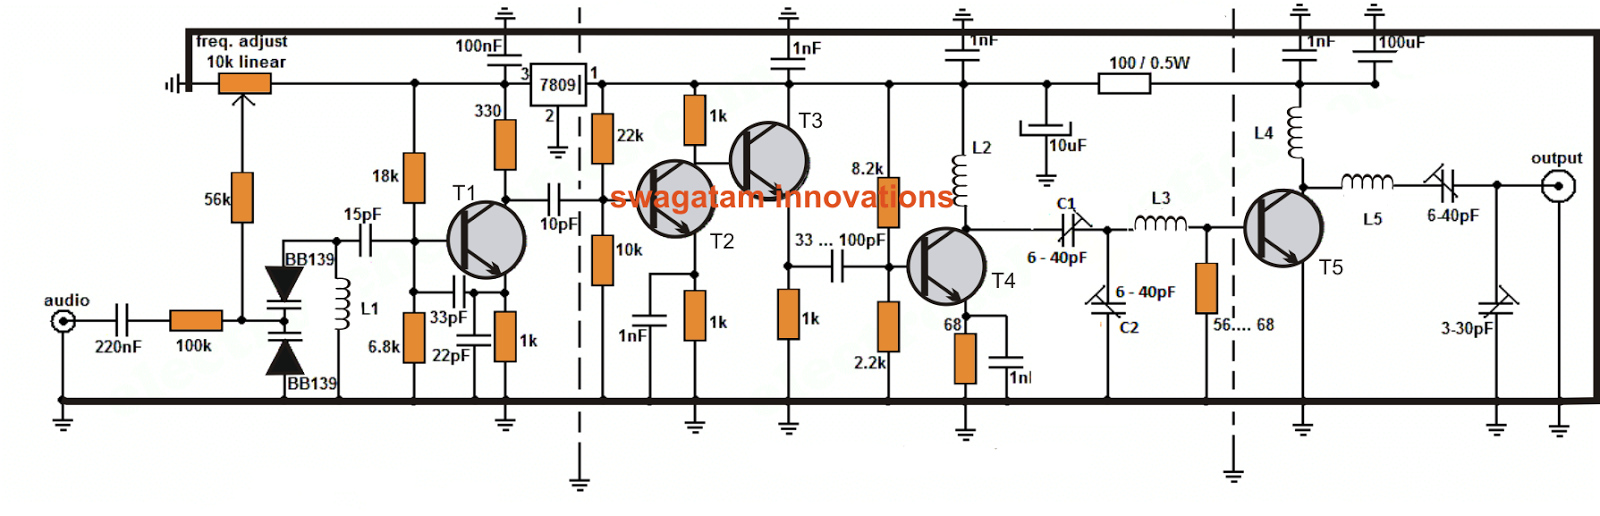 Free Circuit Diagram Electronic Adaptor Wiring For Diy Projectscircuit Schematics Diagrams And Projects Homemade Fm Transmitter Related Keywords Schematic Project Electronics